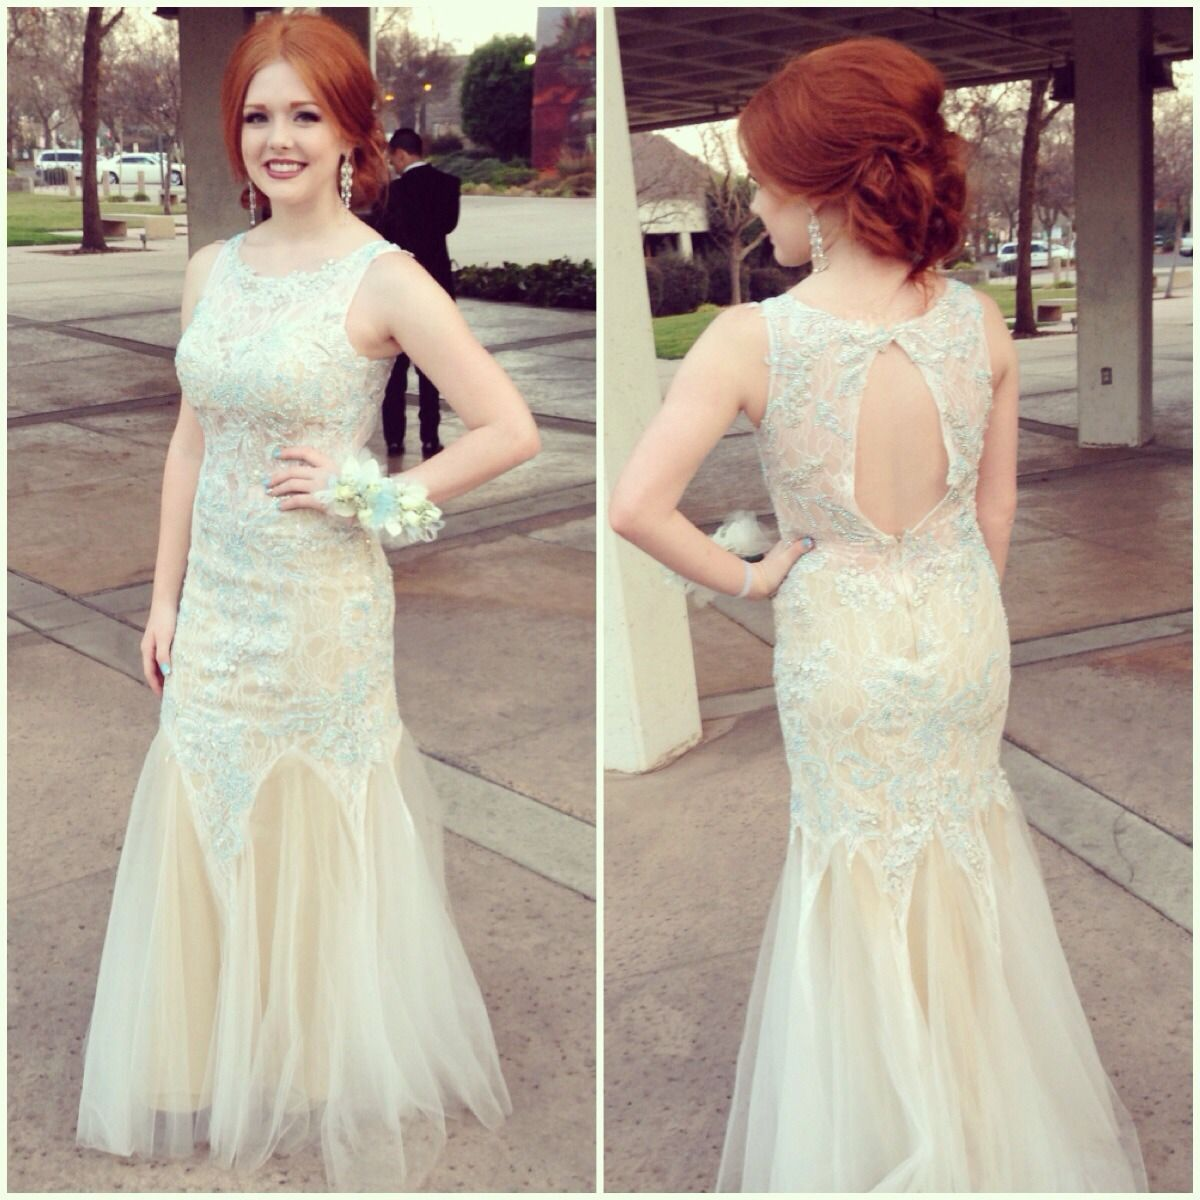 Wearing a lovely ivory mac duggal dress love this mermaid dress for